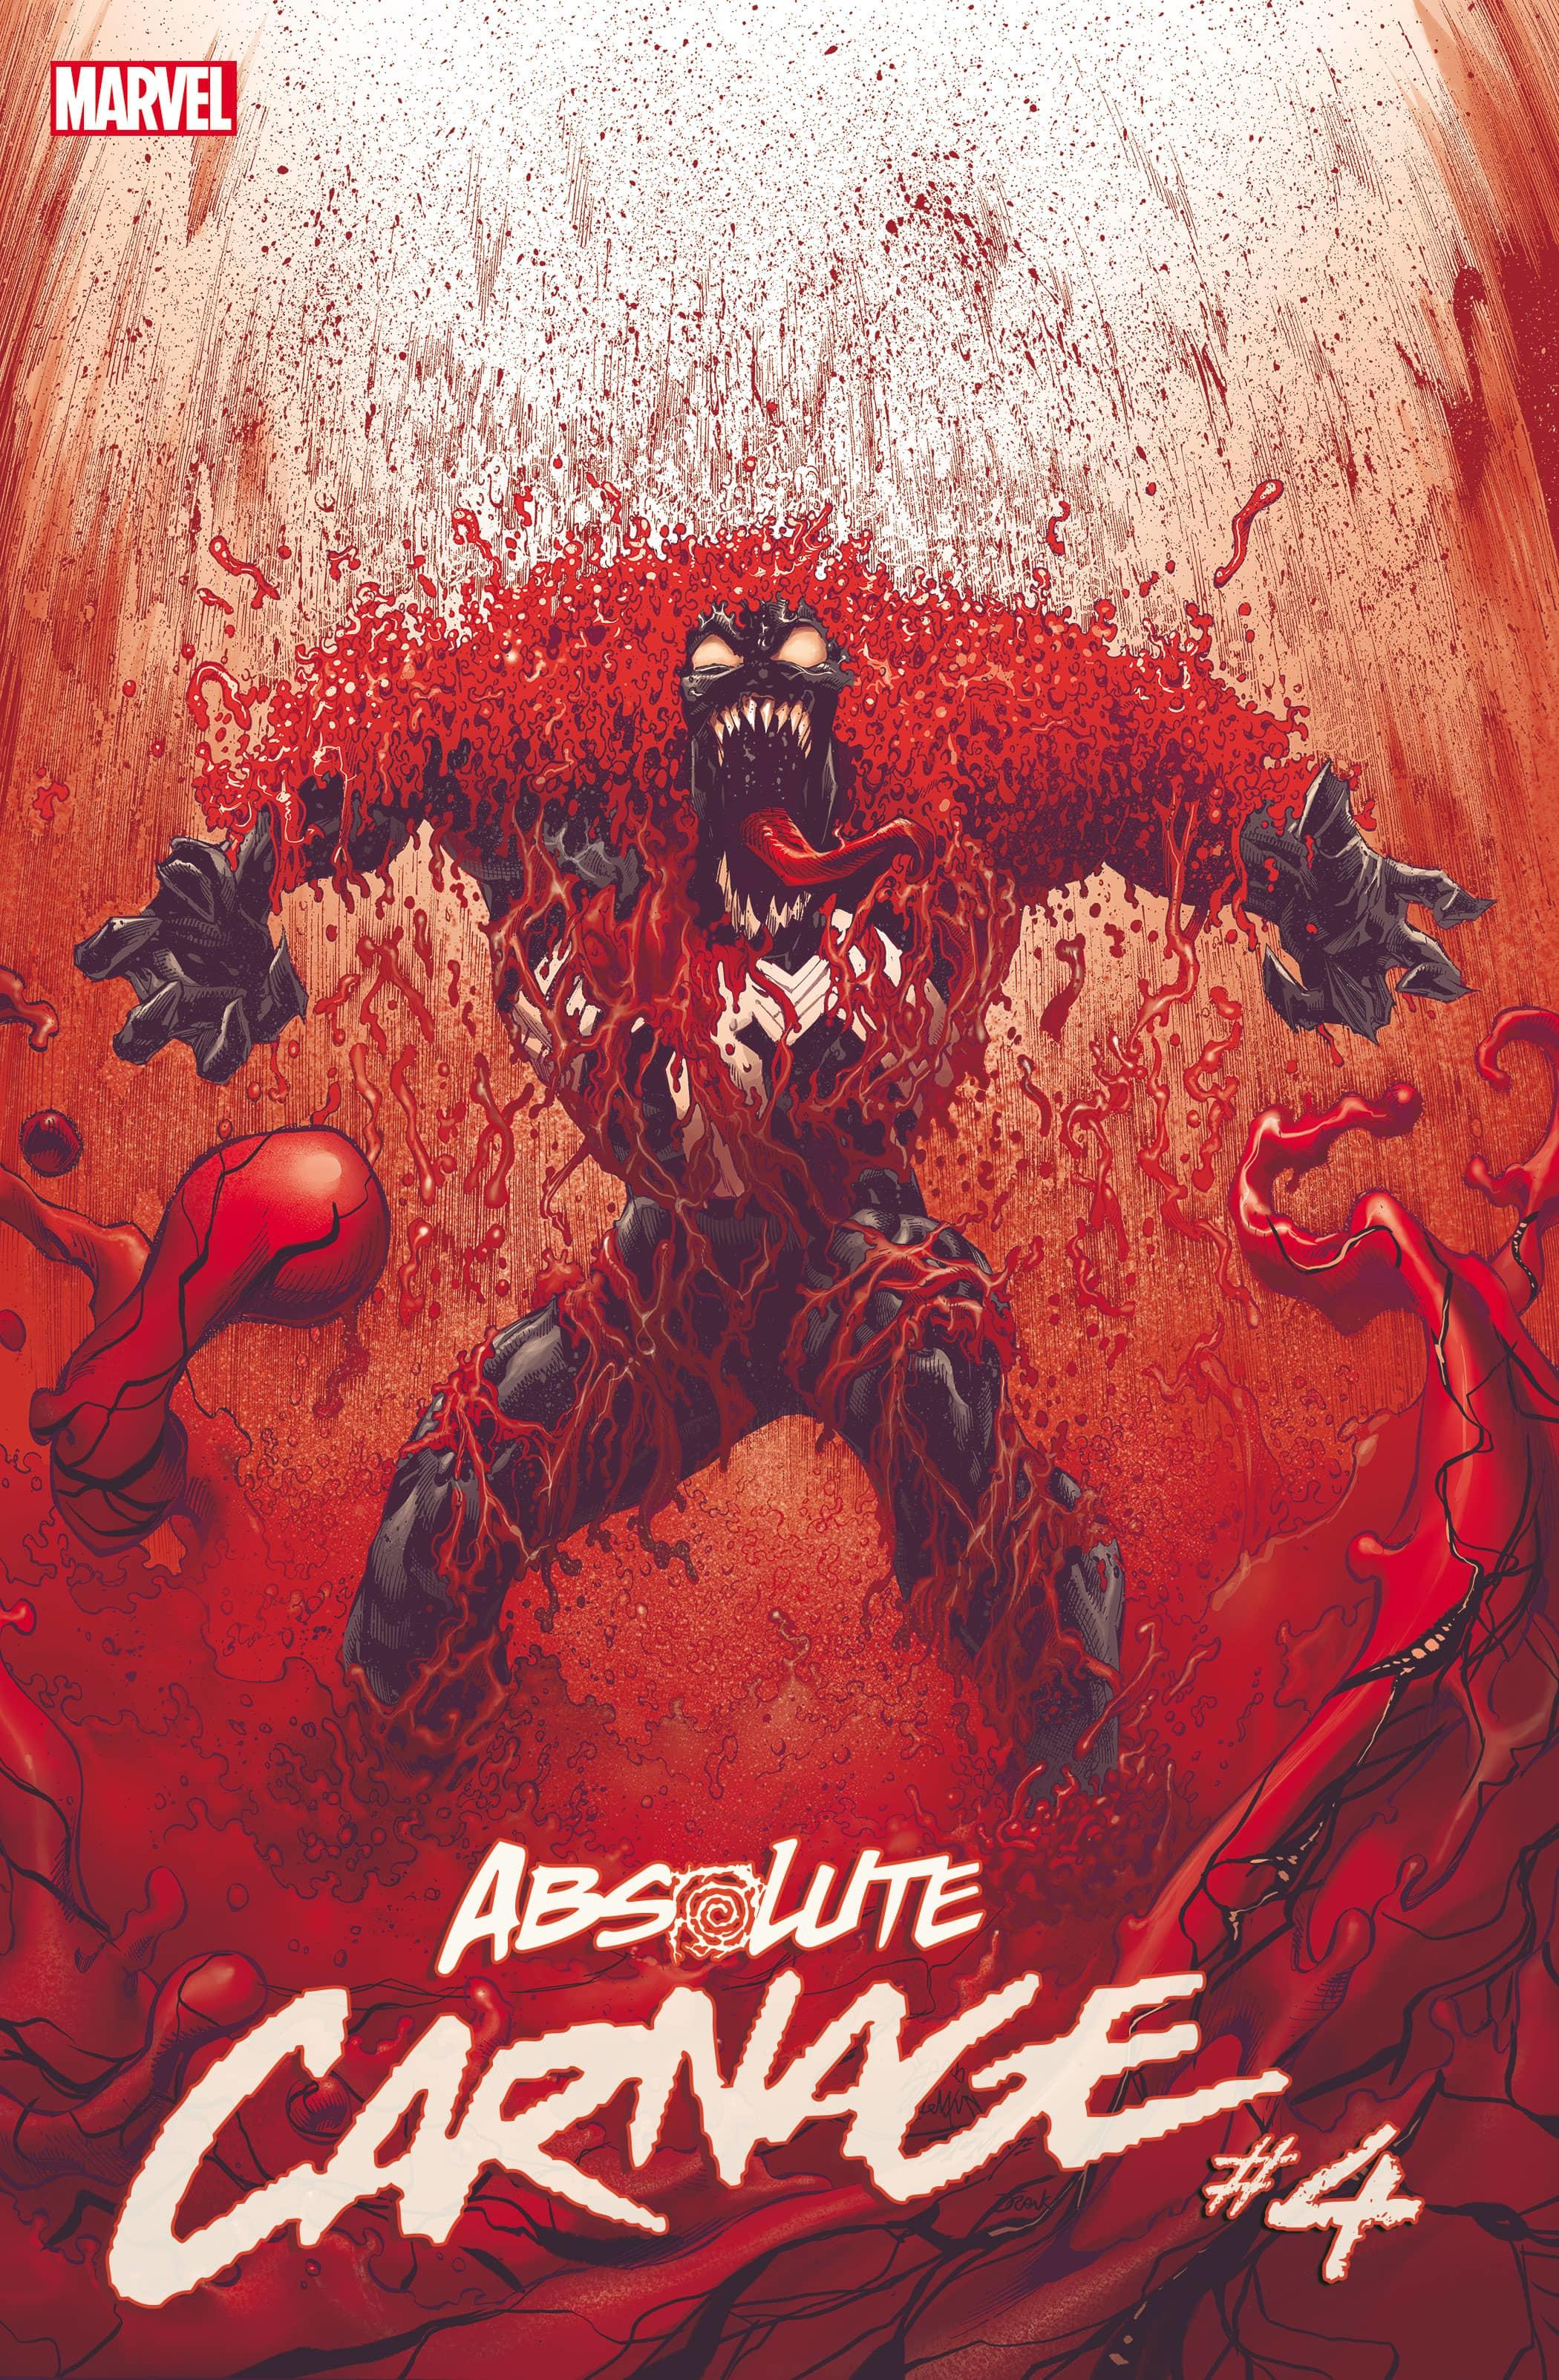 Massive 'Absolute Carnage' Event Extended | News | Marvel